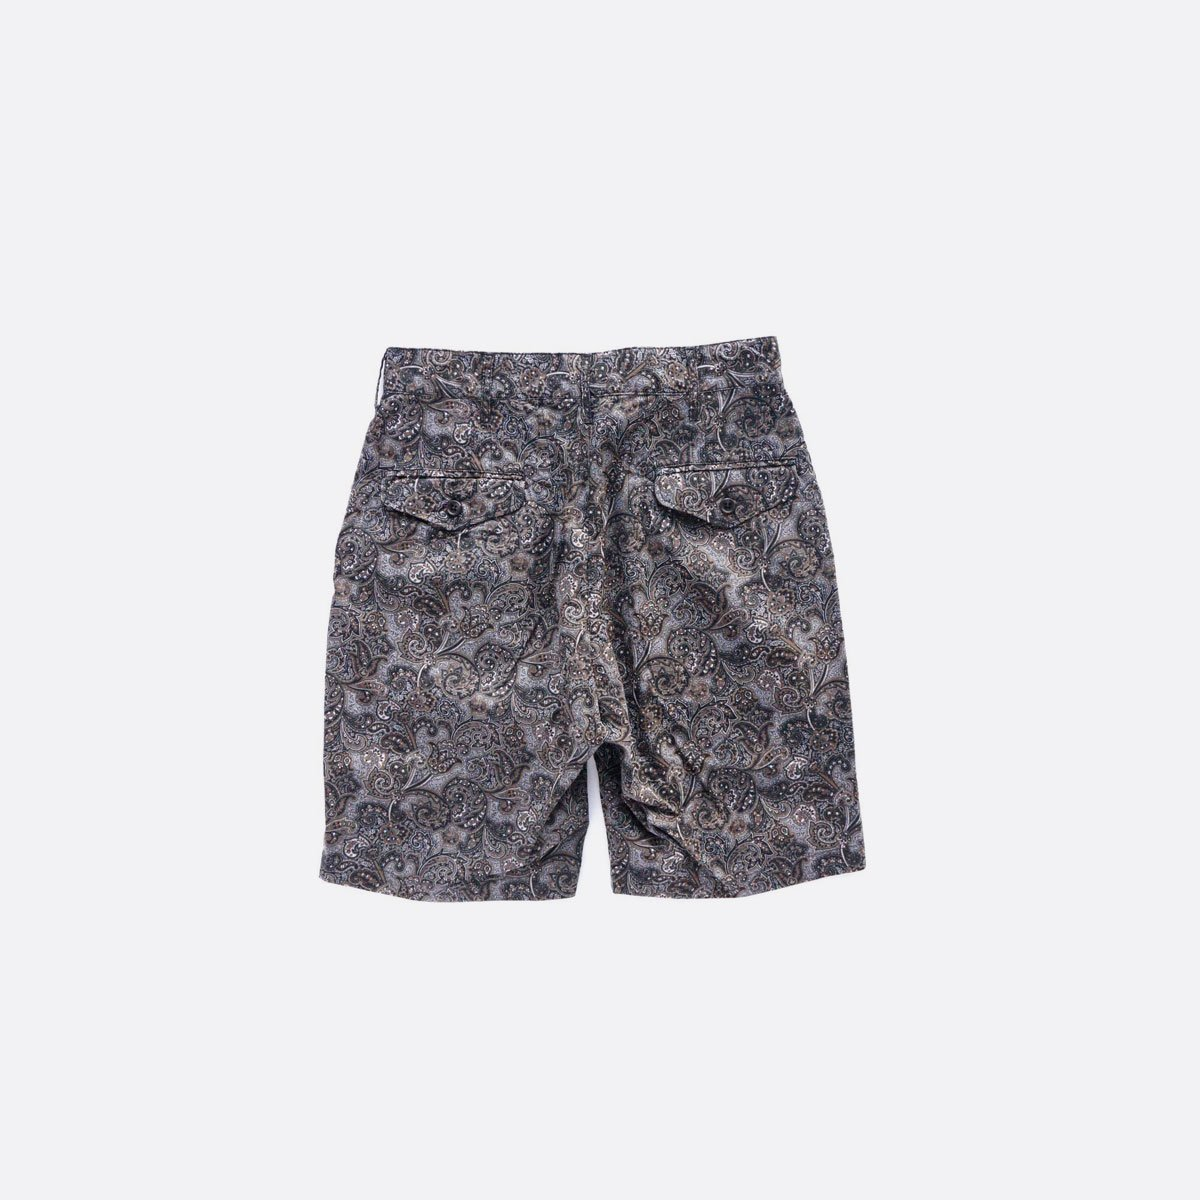 Engineered Garments  Ghurka Short - Paisley Print  (Black/Brown)2